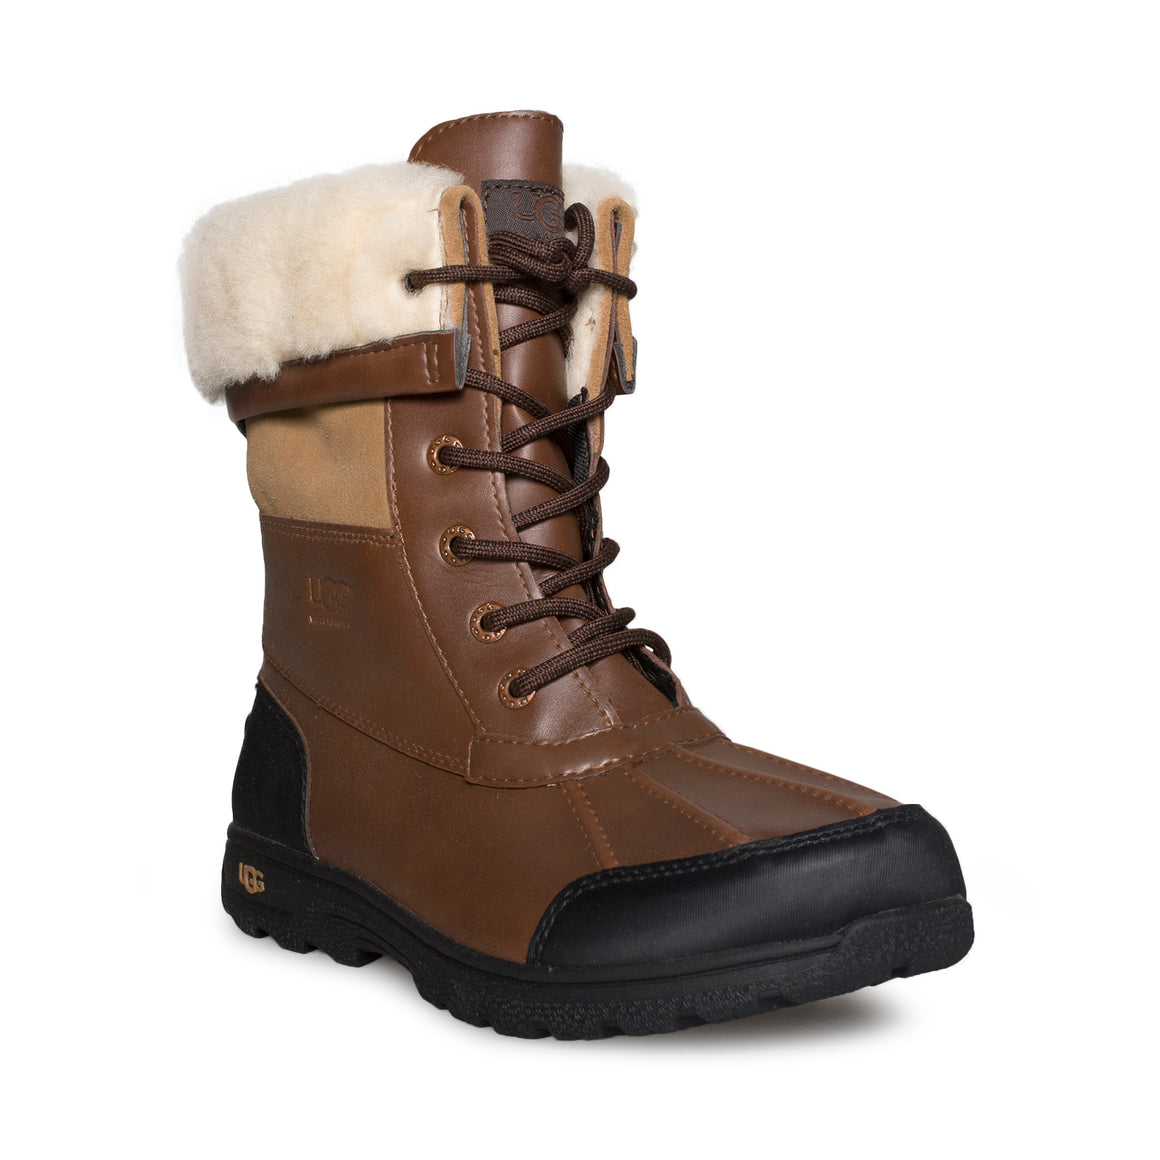 UGG Butte II Worchester Boots - Youth